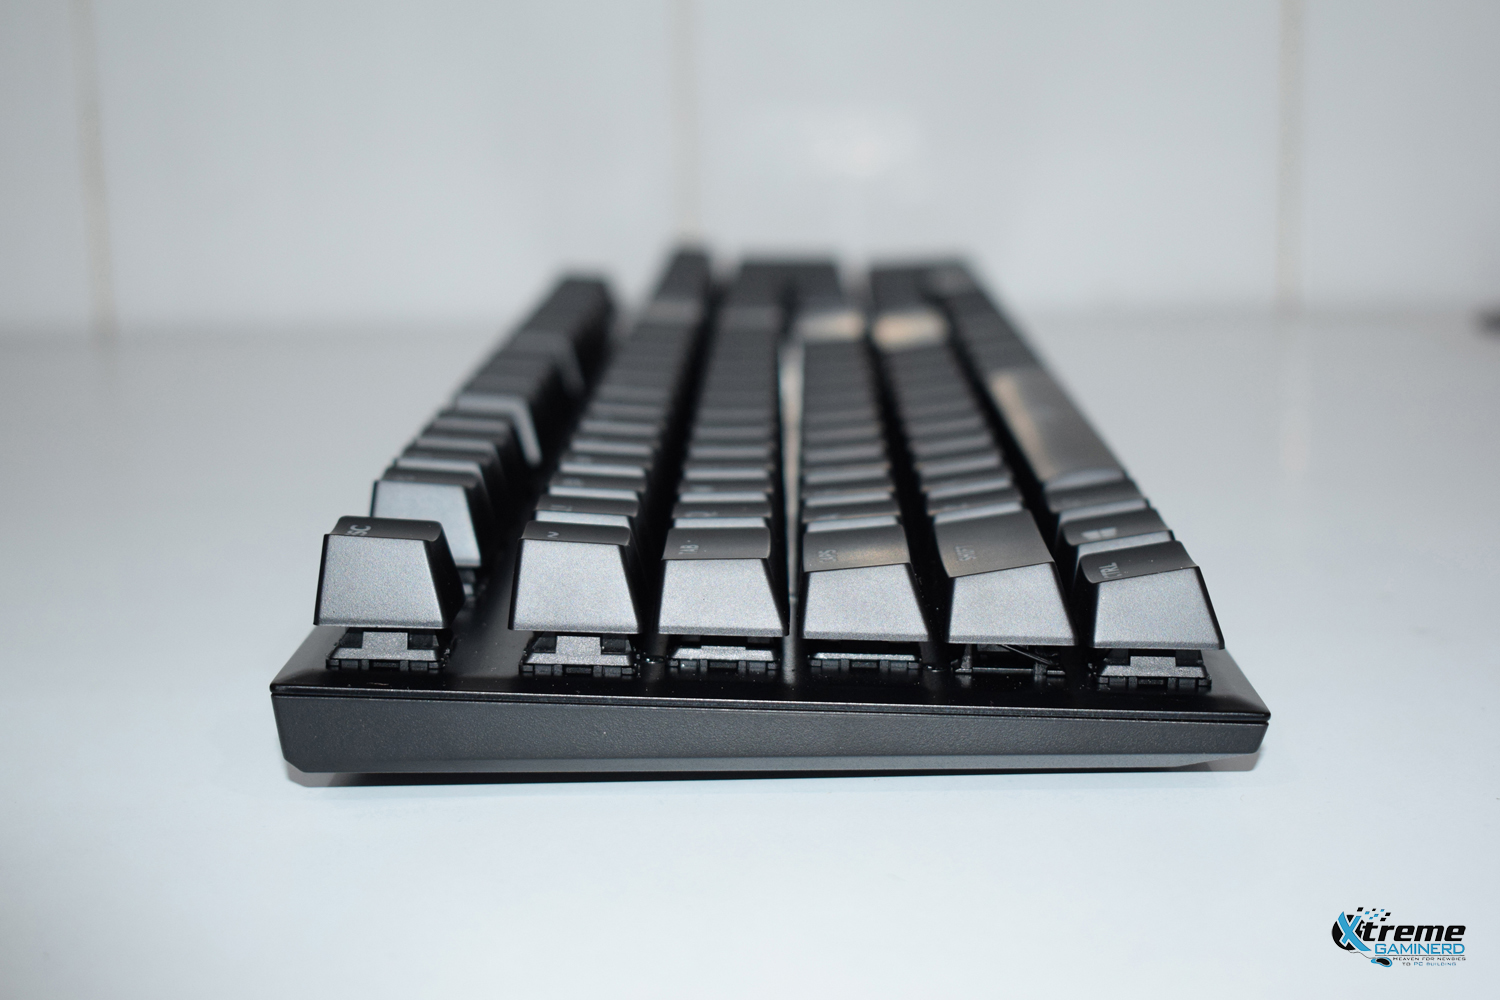 HyperX Alloy FPS mechanical keyboard 4